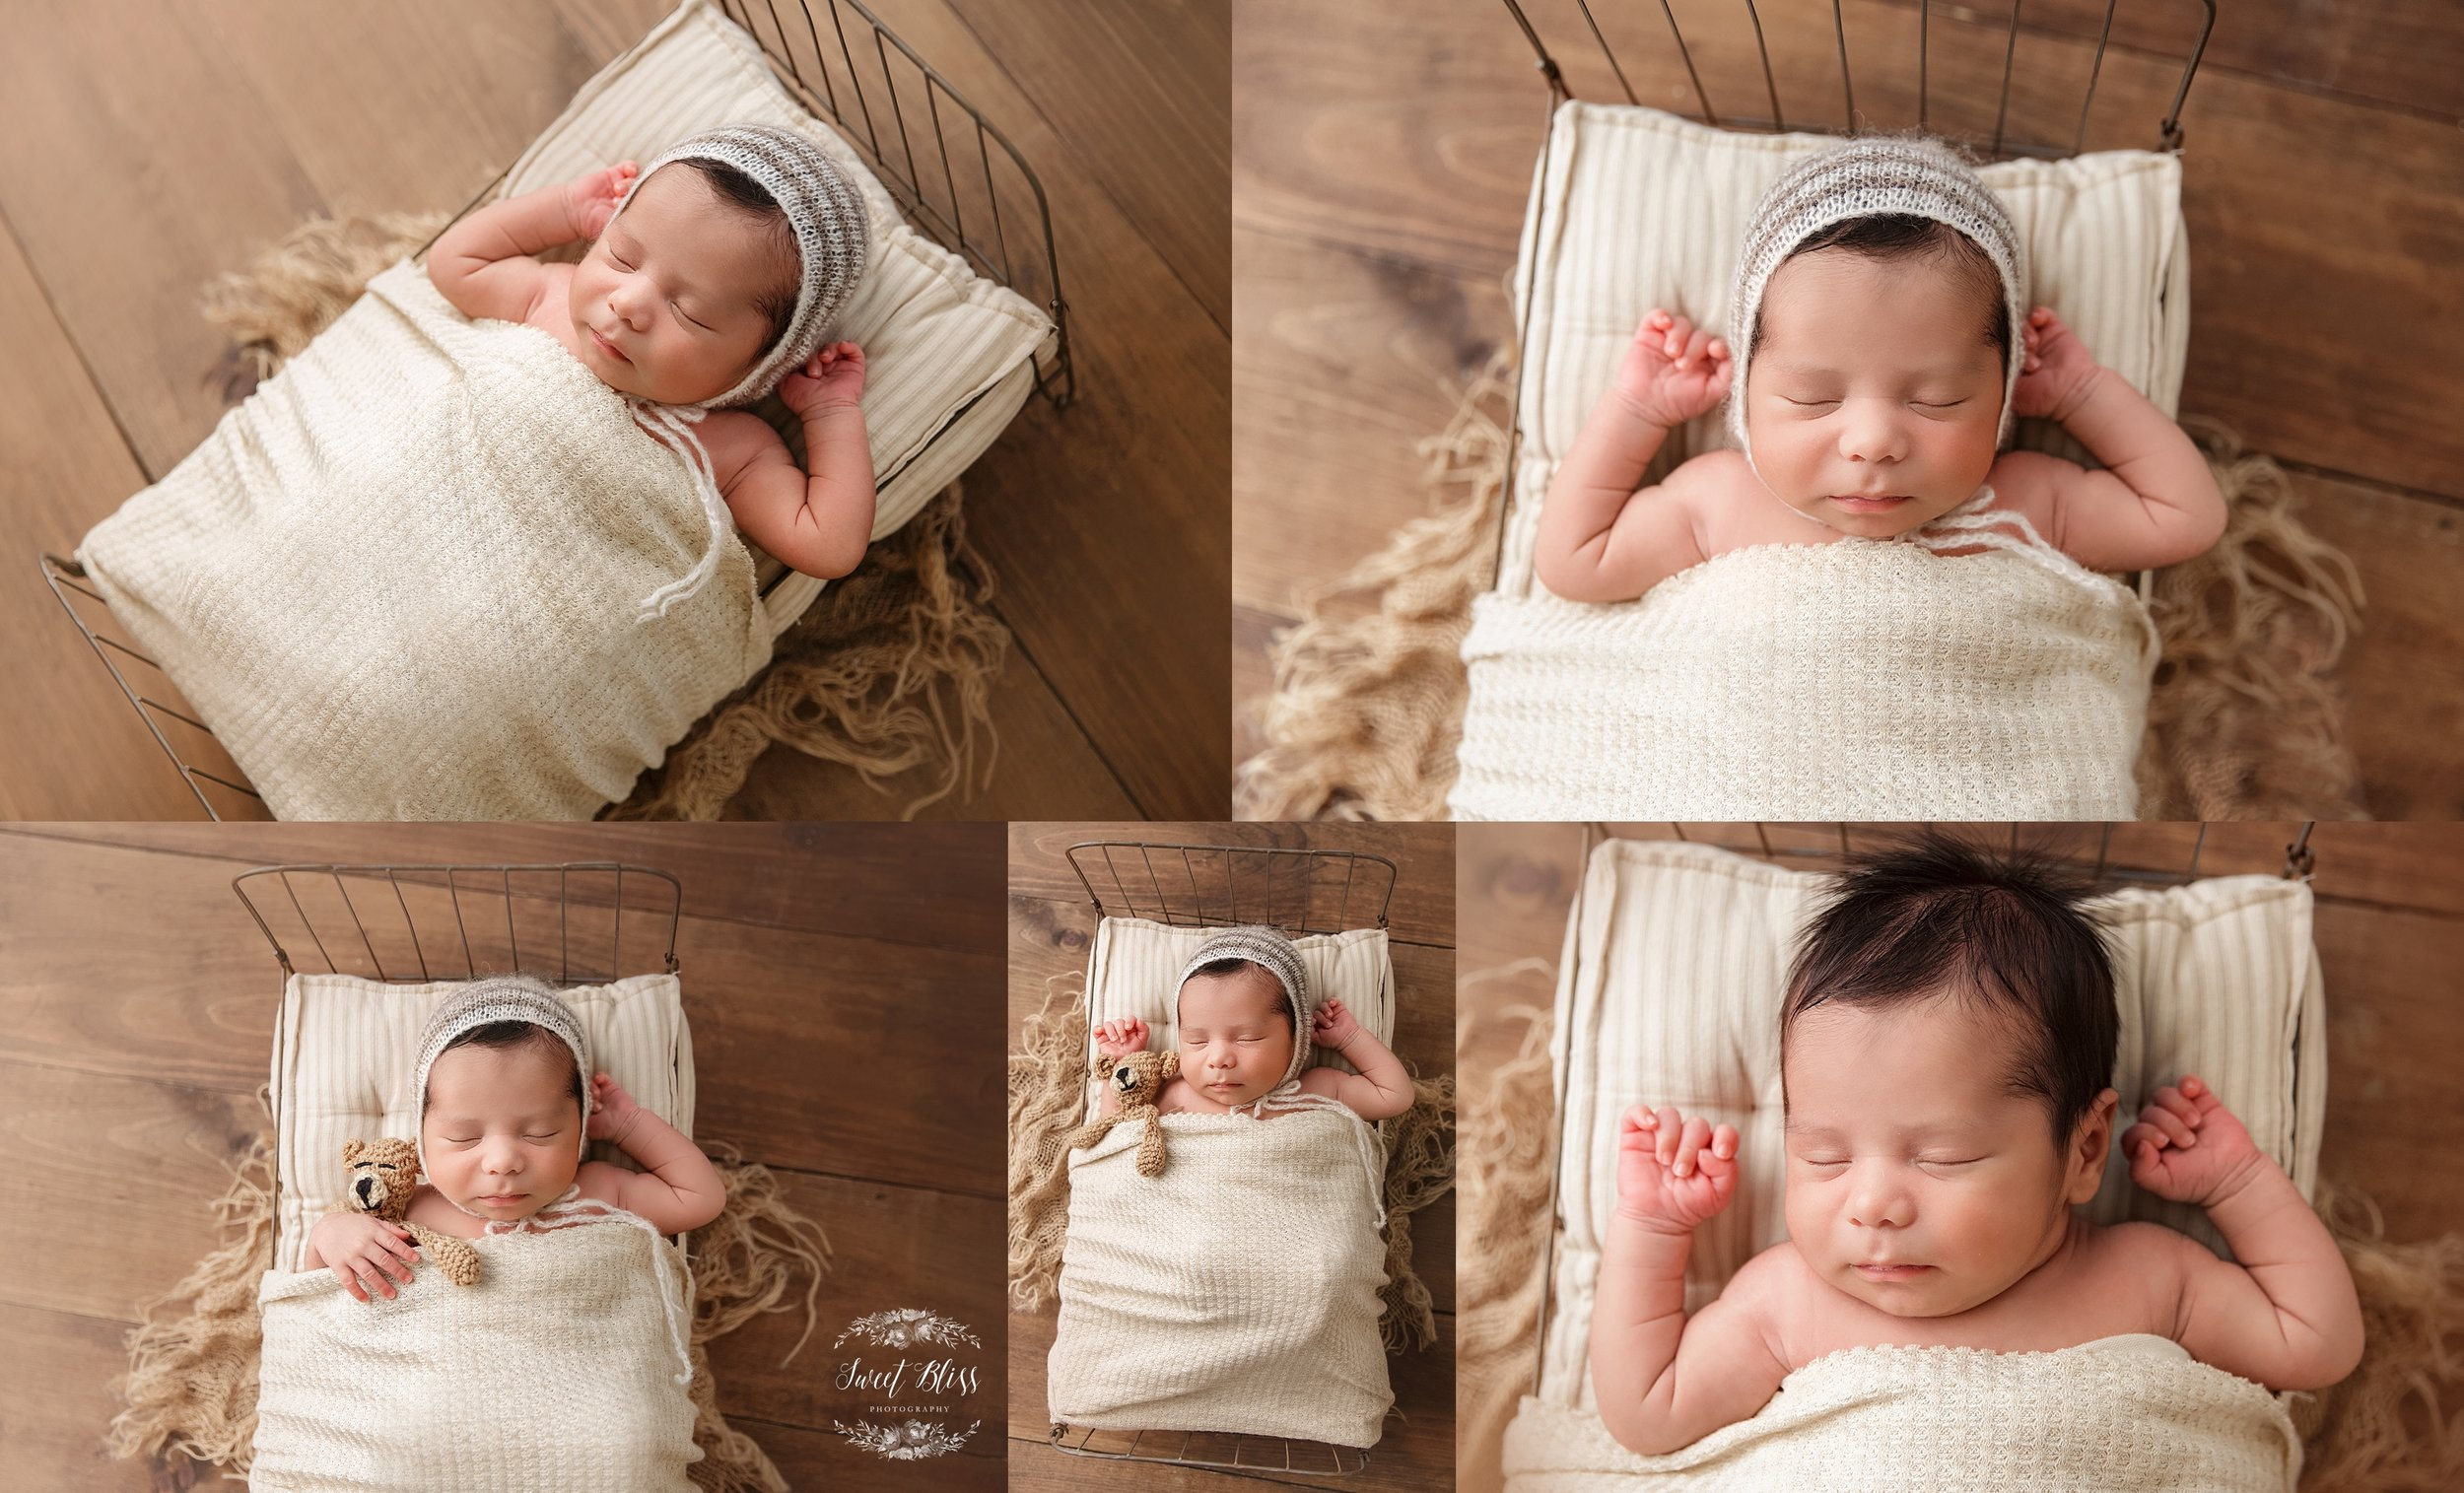 Baltimorenewbornphotographer_sweetblissphoto_bed1.jpg